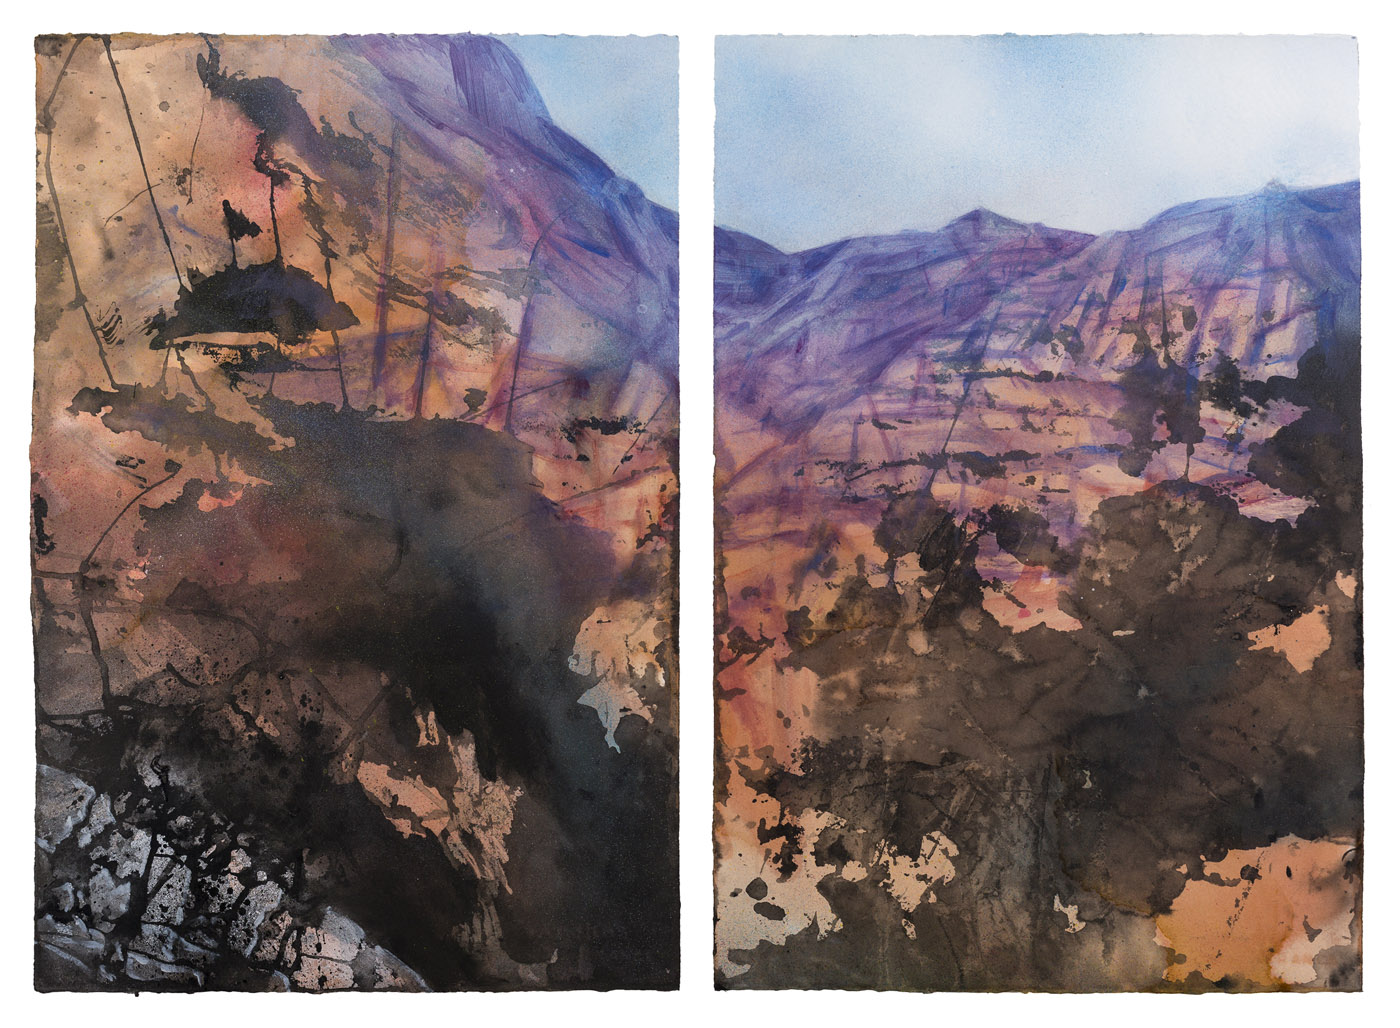 Below the Rim, acrylic, ink and shellac on paper, 56 x 77 cm, 2013 (photo by Dean Butters)